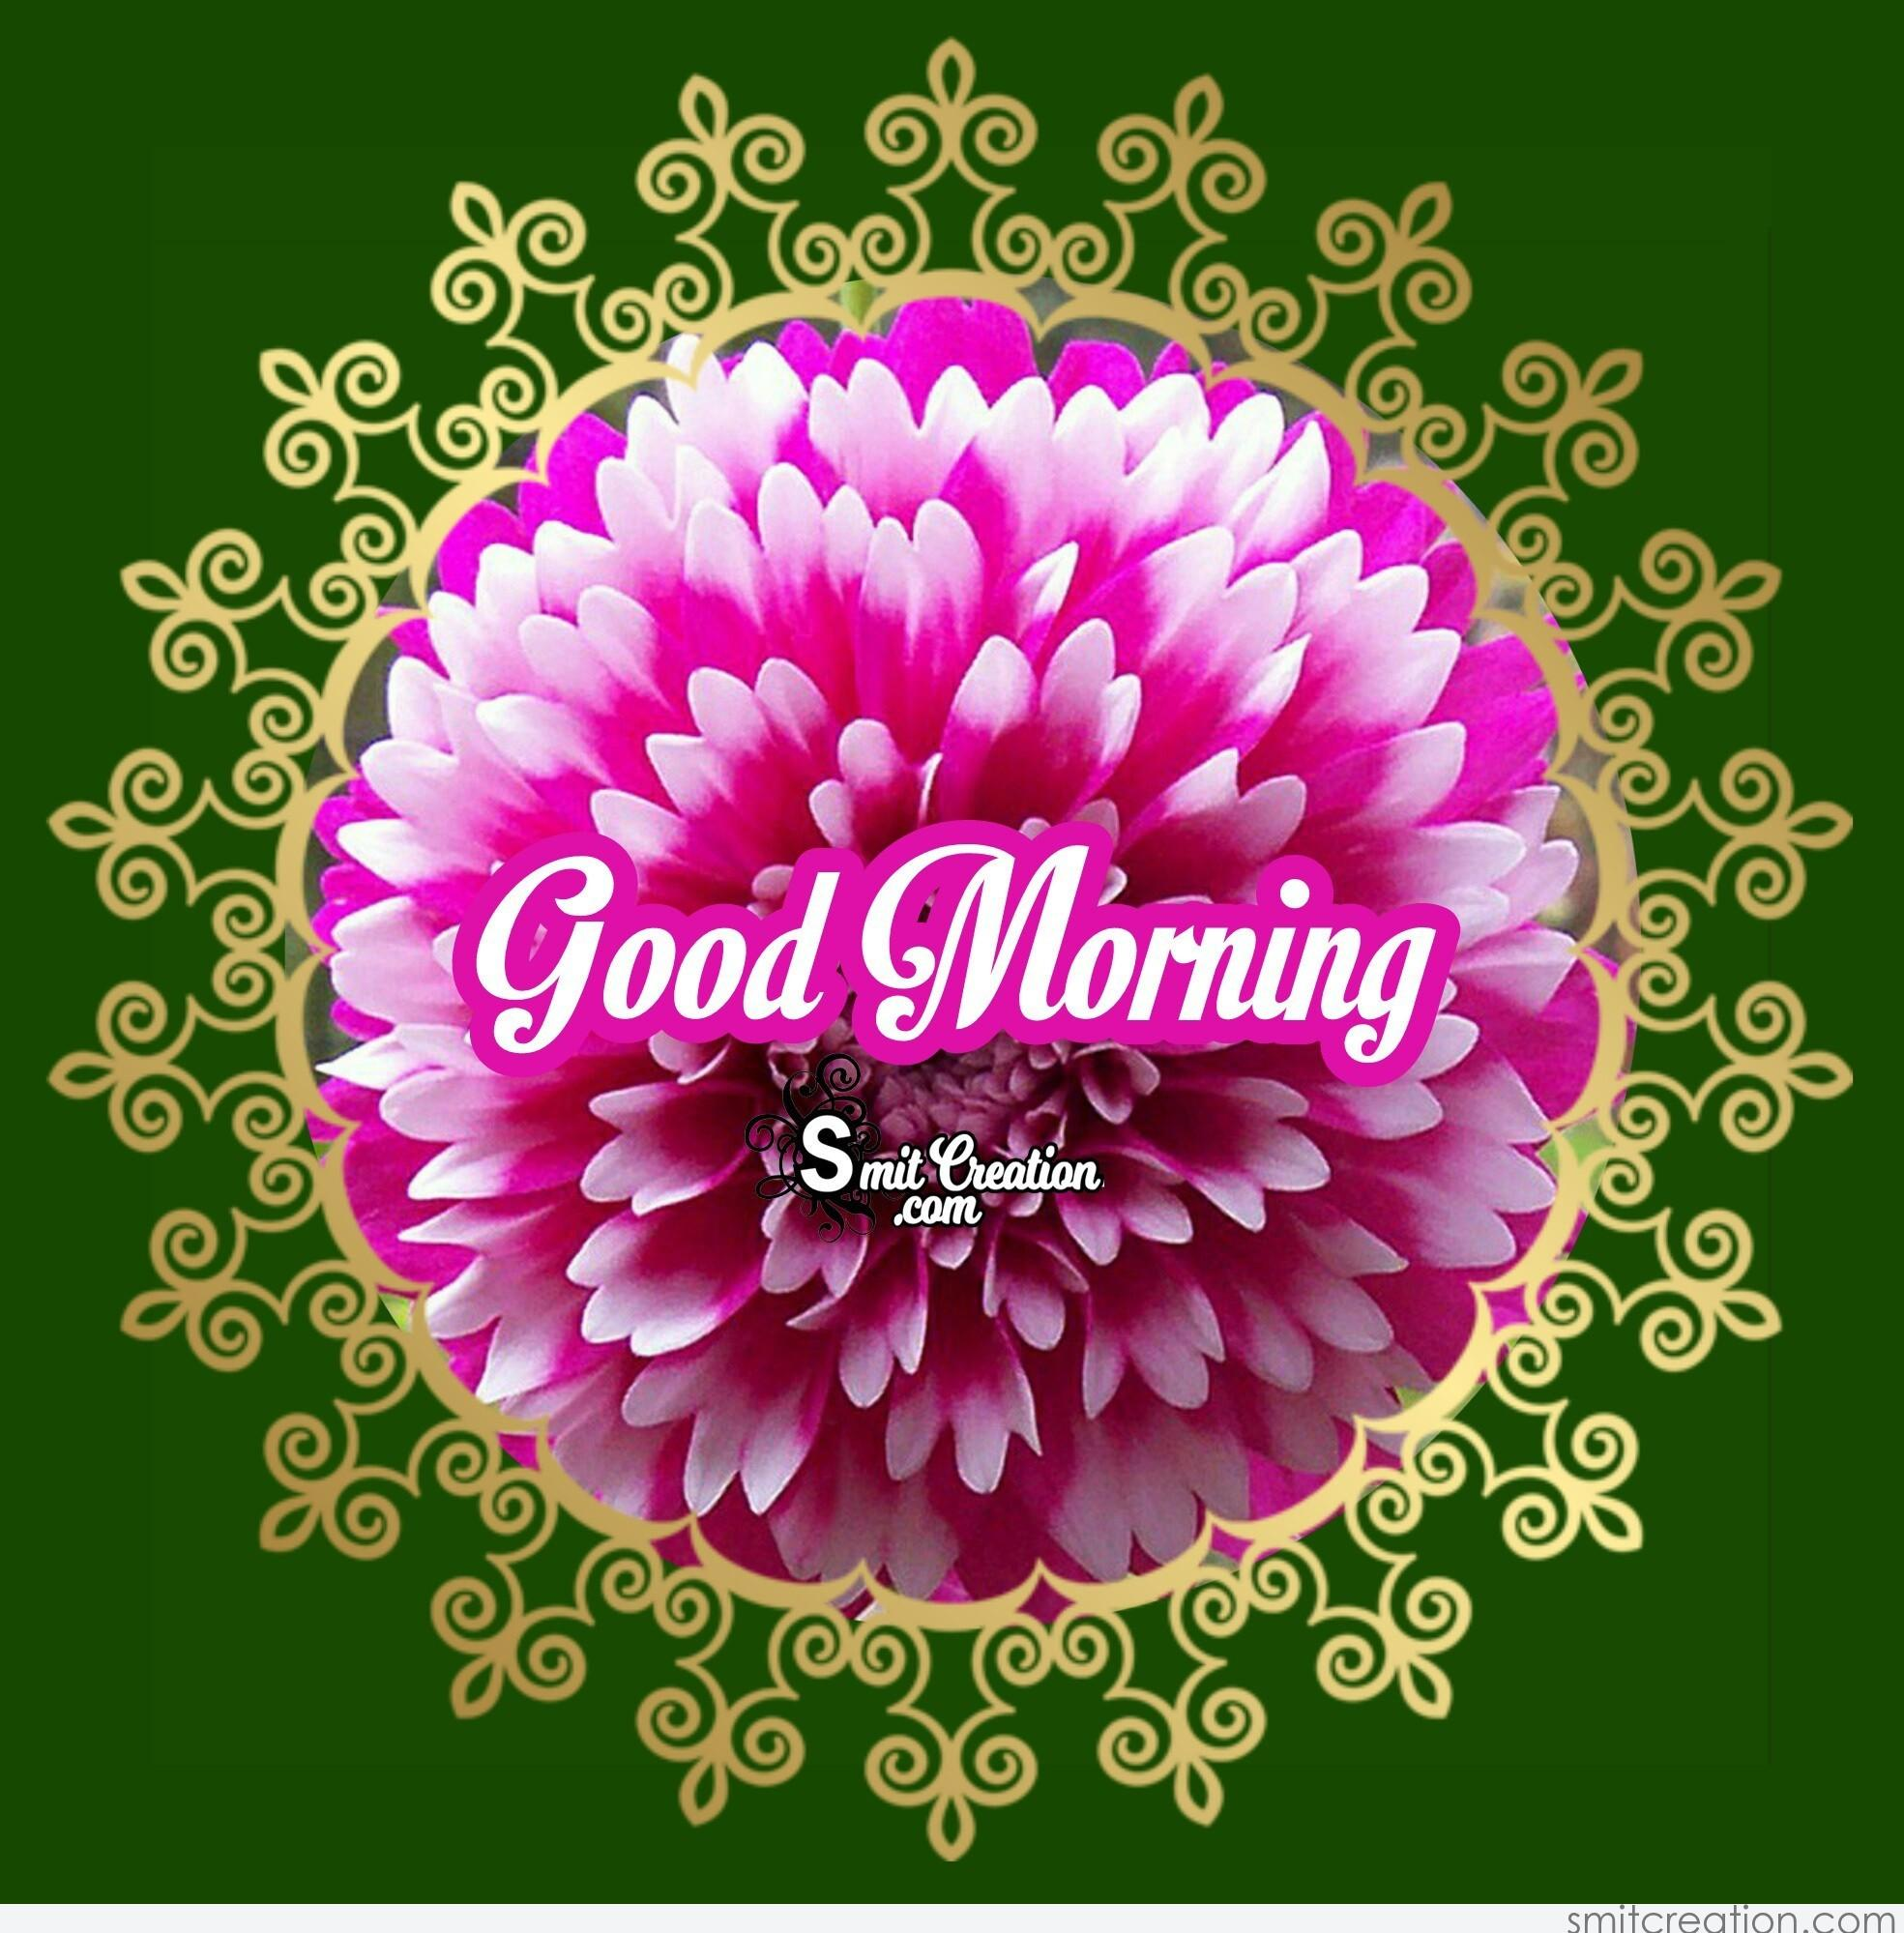 Good Morning Beautiful Flower Image Smitcreation